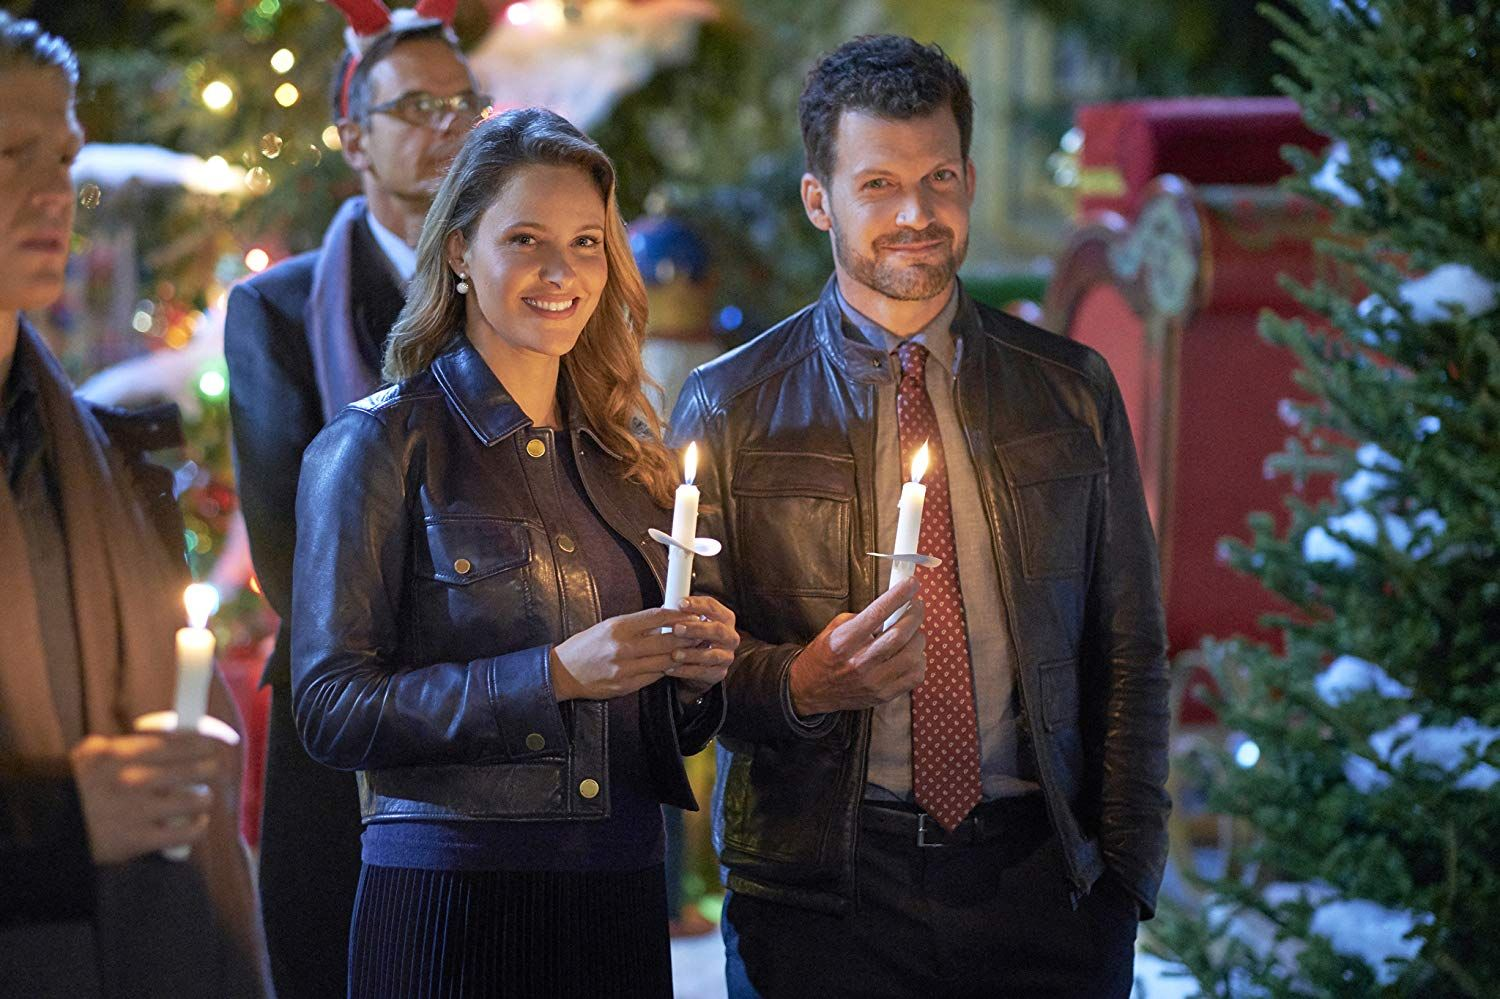 Jill Wagner and Robinson Peete in Christmas in Evergreen